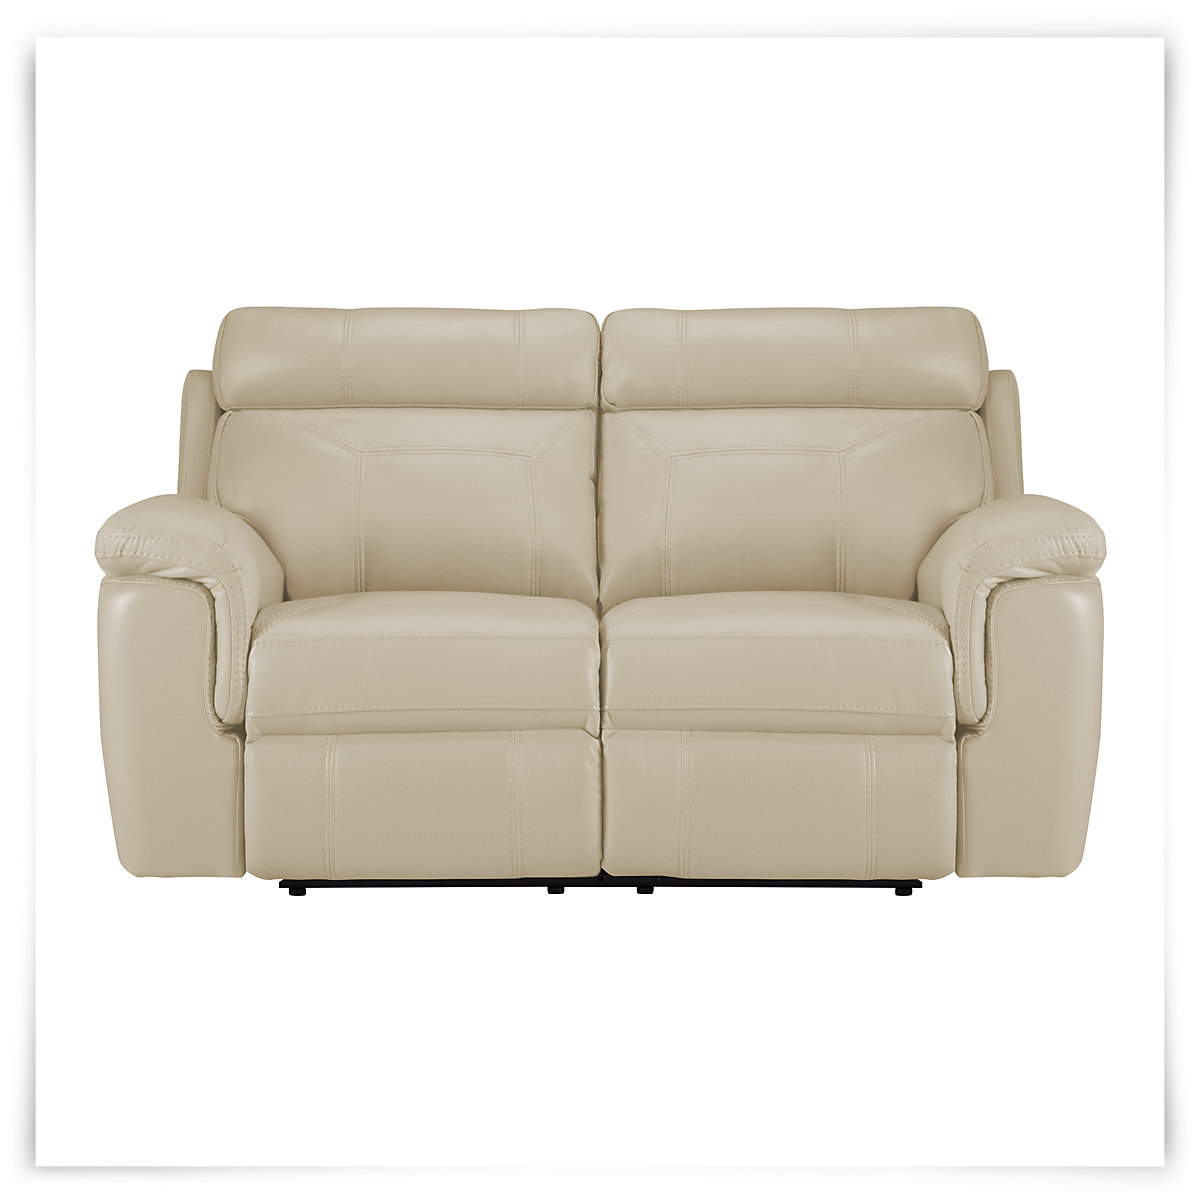 small reclining loveseat: 4 innovative designs of small loveseats for  seeking comfort MXAHOTO